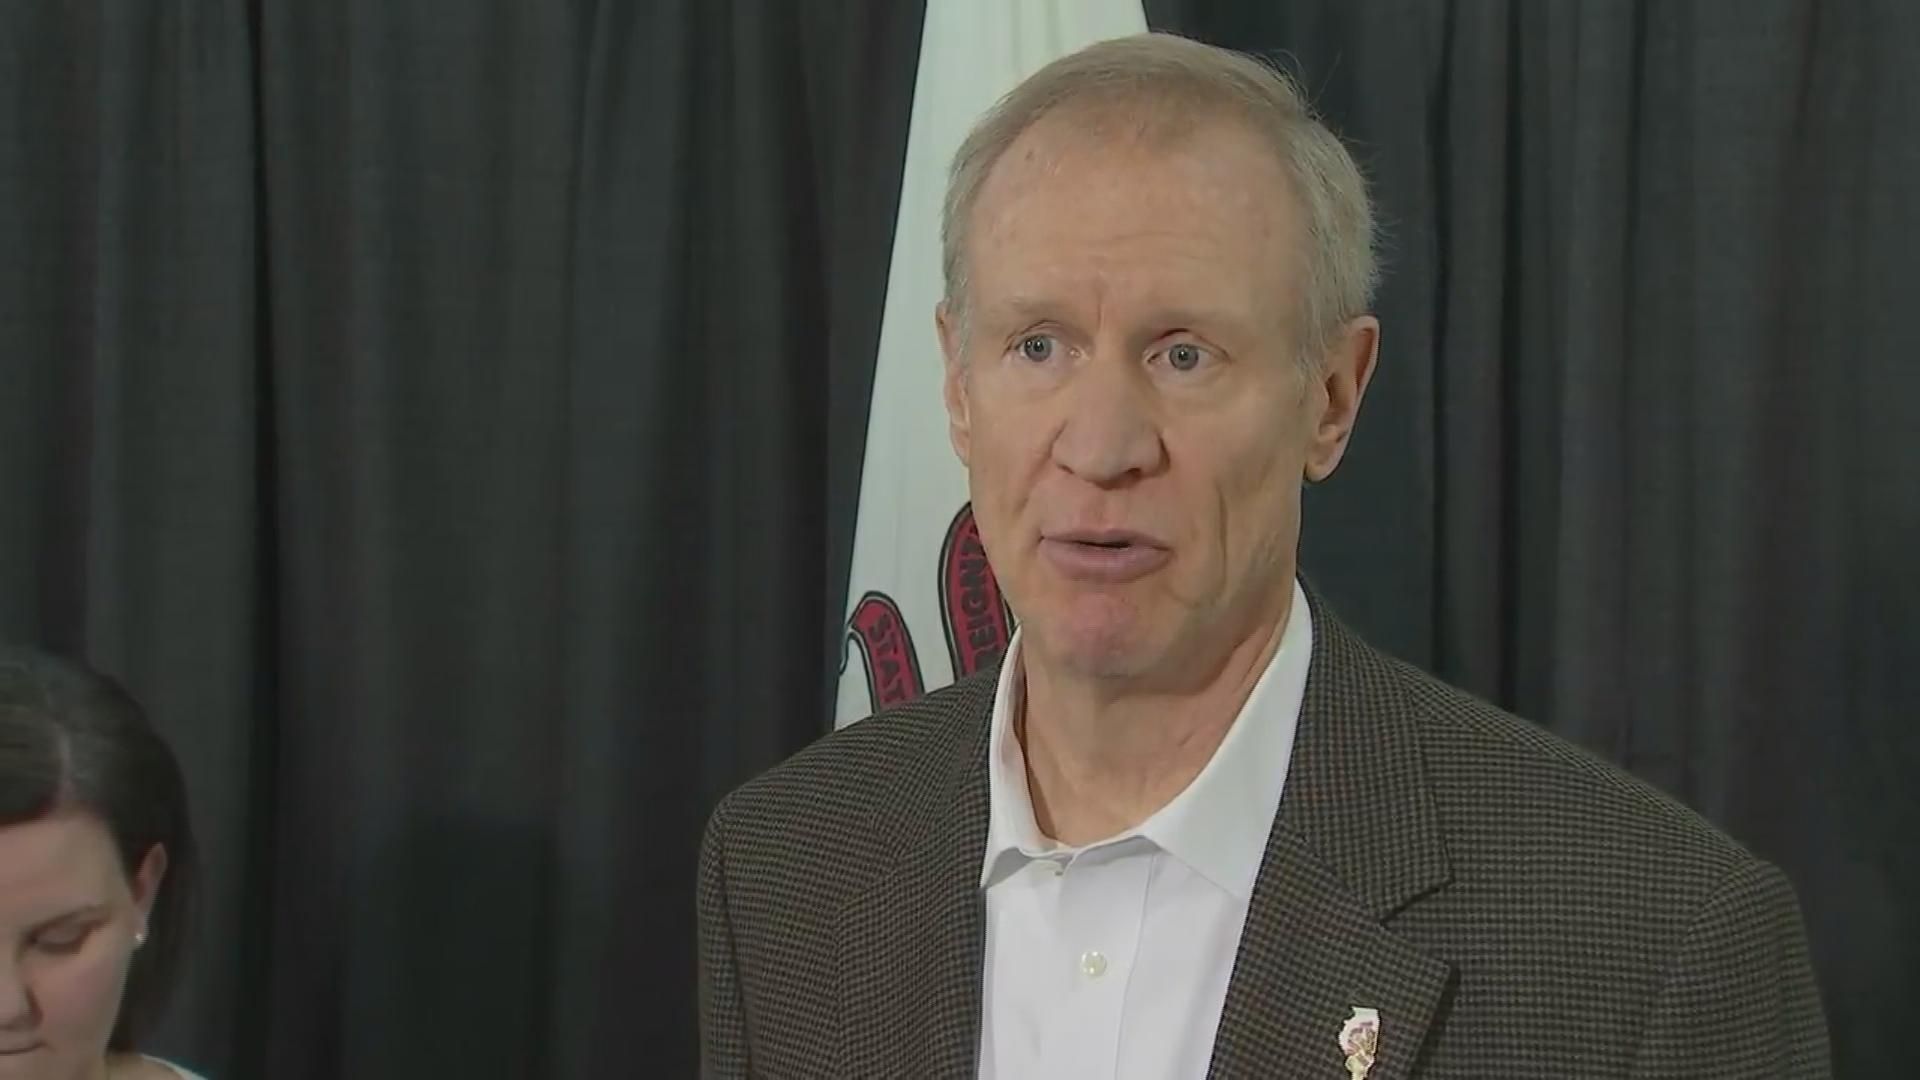 To Explain Change On Abortion, Rauner Cites Economic Agenda